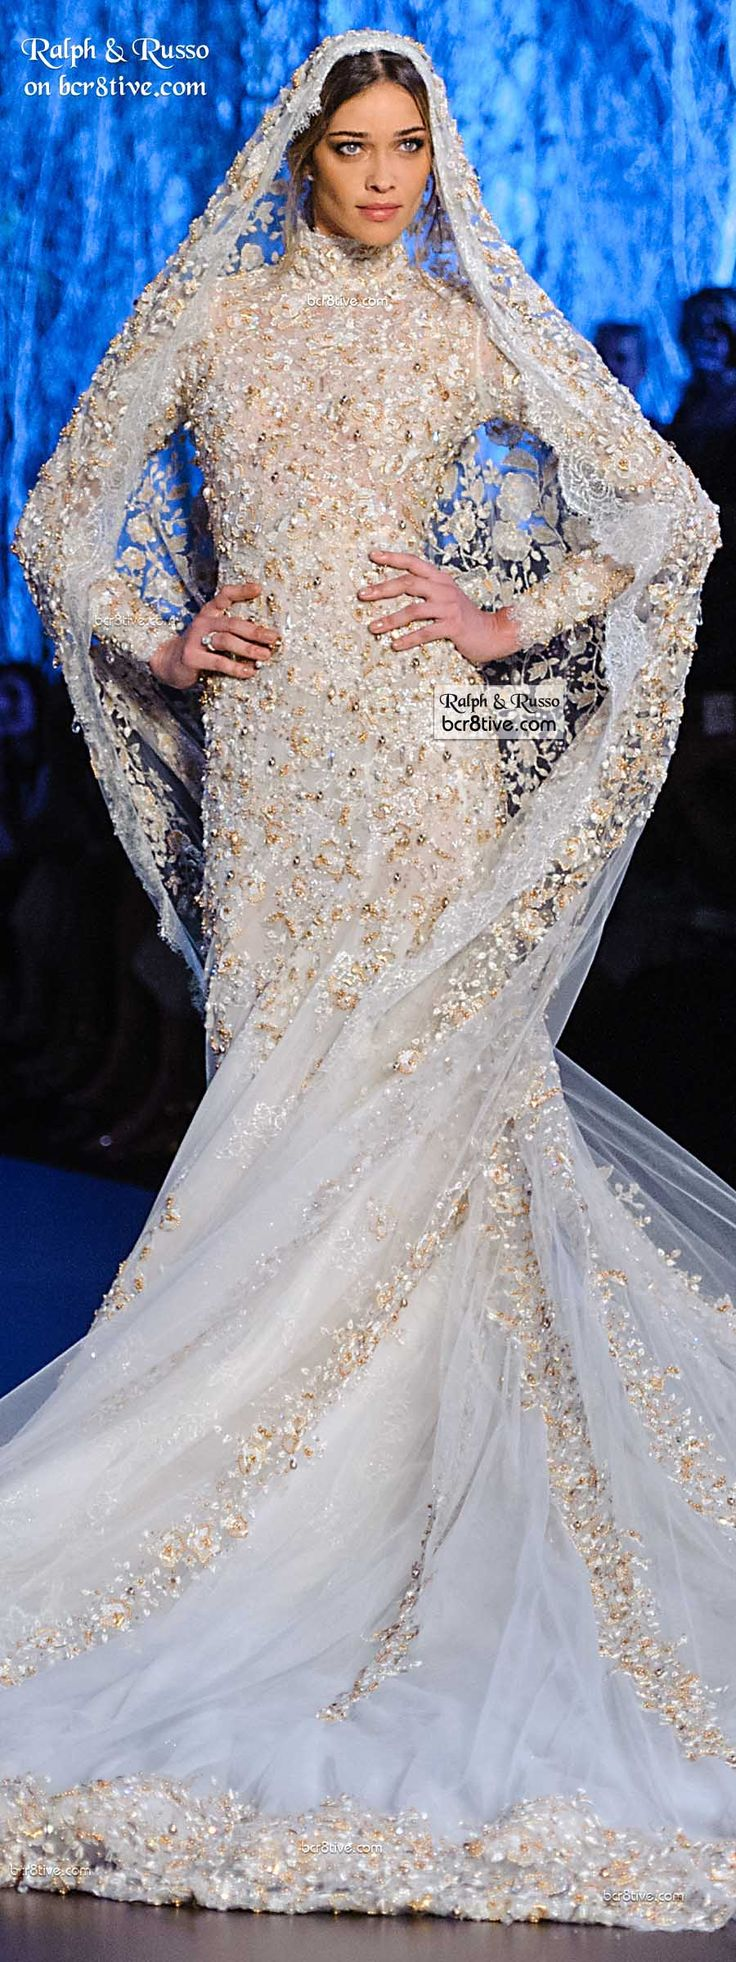 Ralph & Russo Haute Couture Fall 2015-16 Collection ...